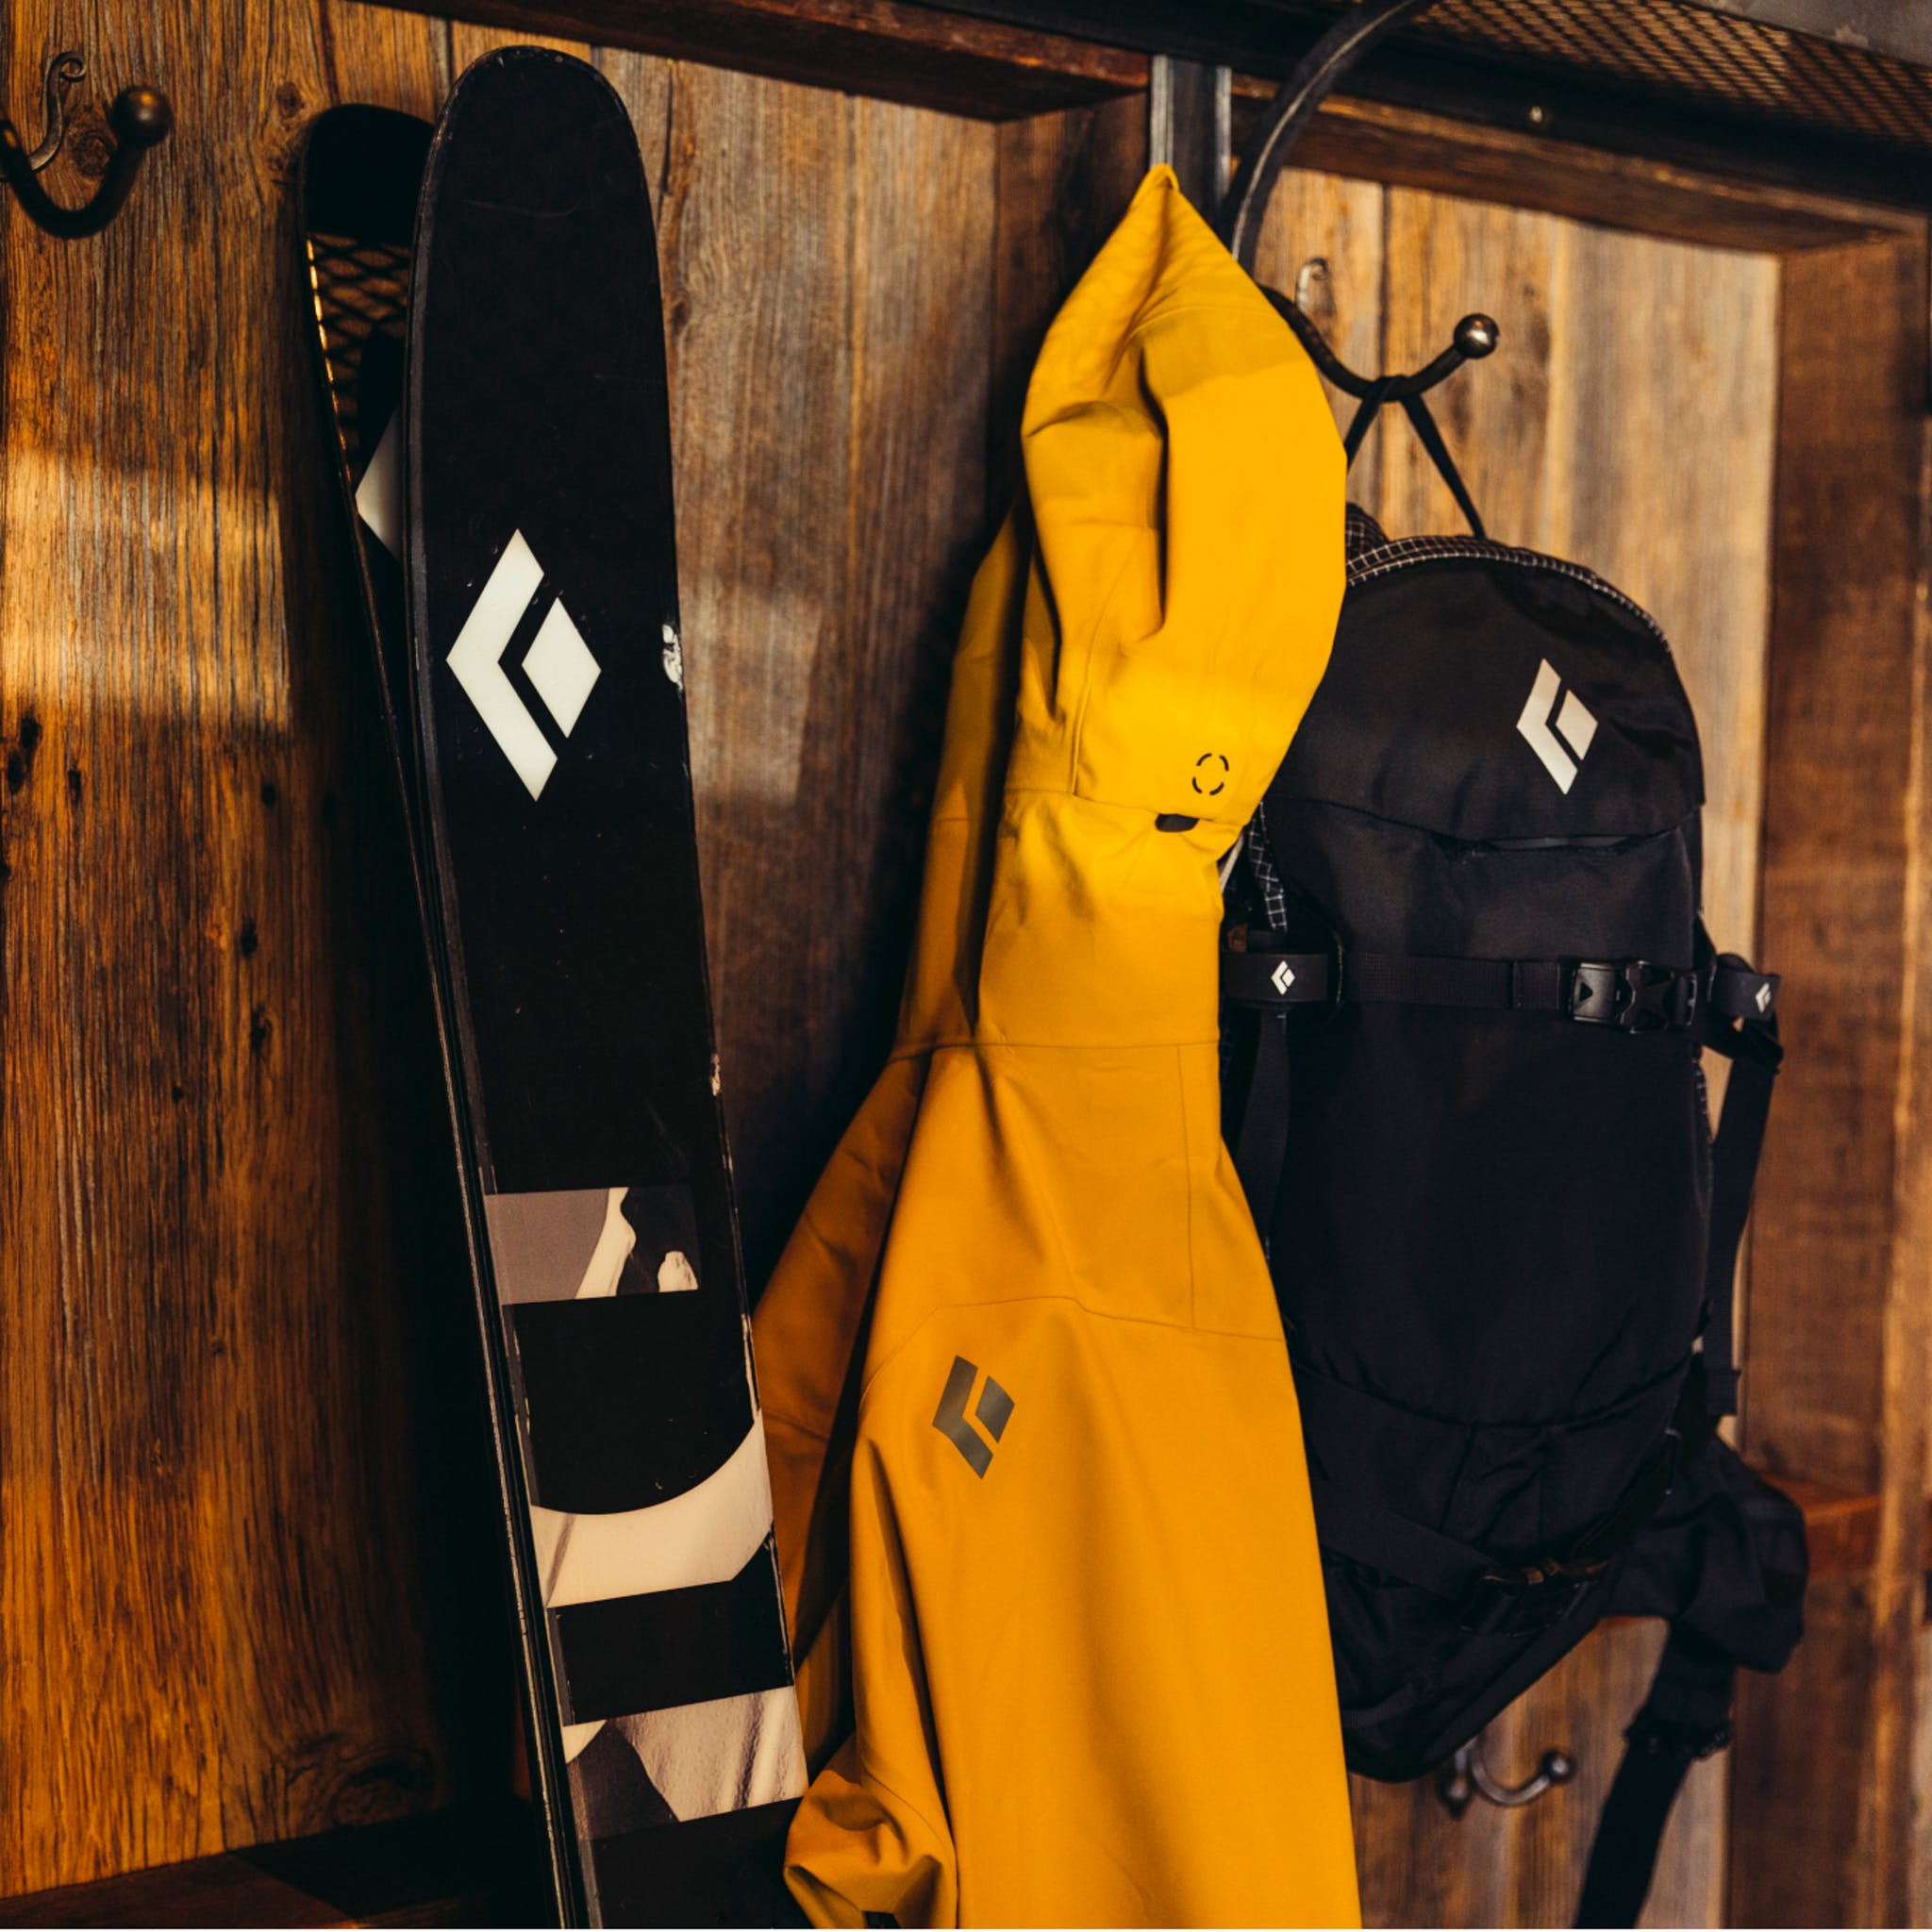 A Black Diamond outerwear kit hanging in a house.